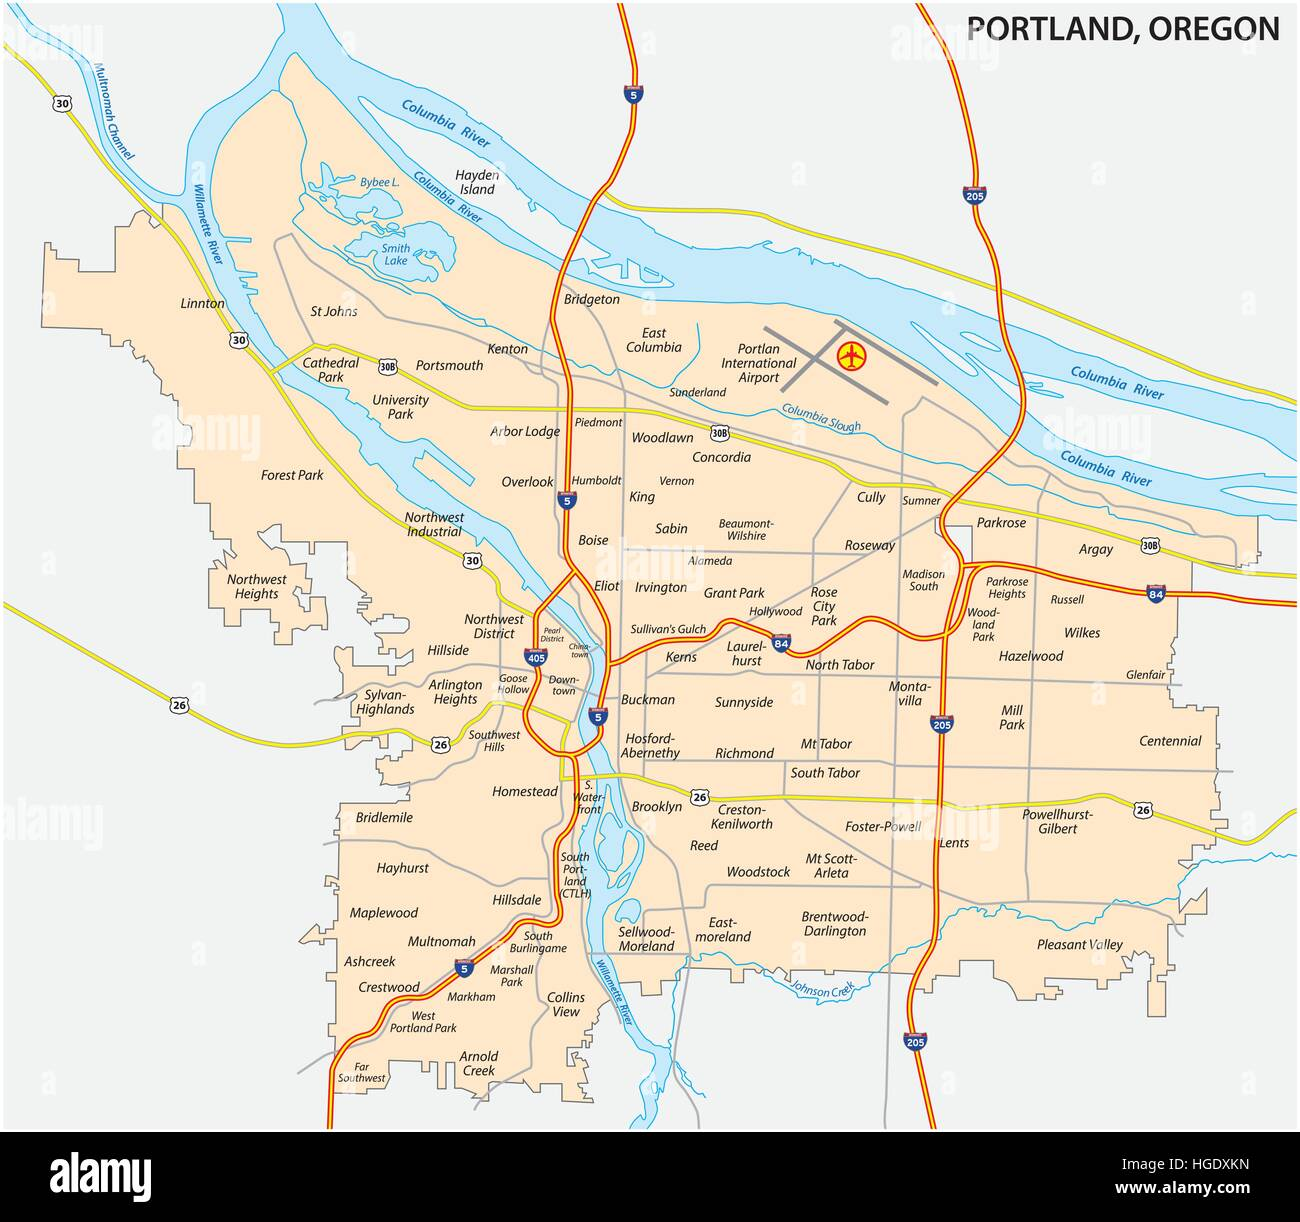 road and neighborhood map of Portland, Oregon Stock Vector Art ...